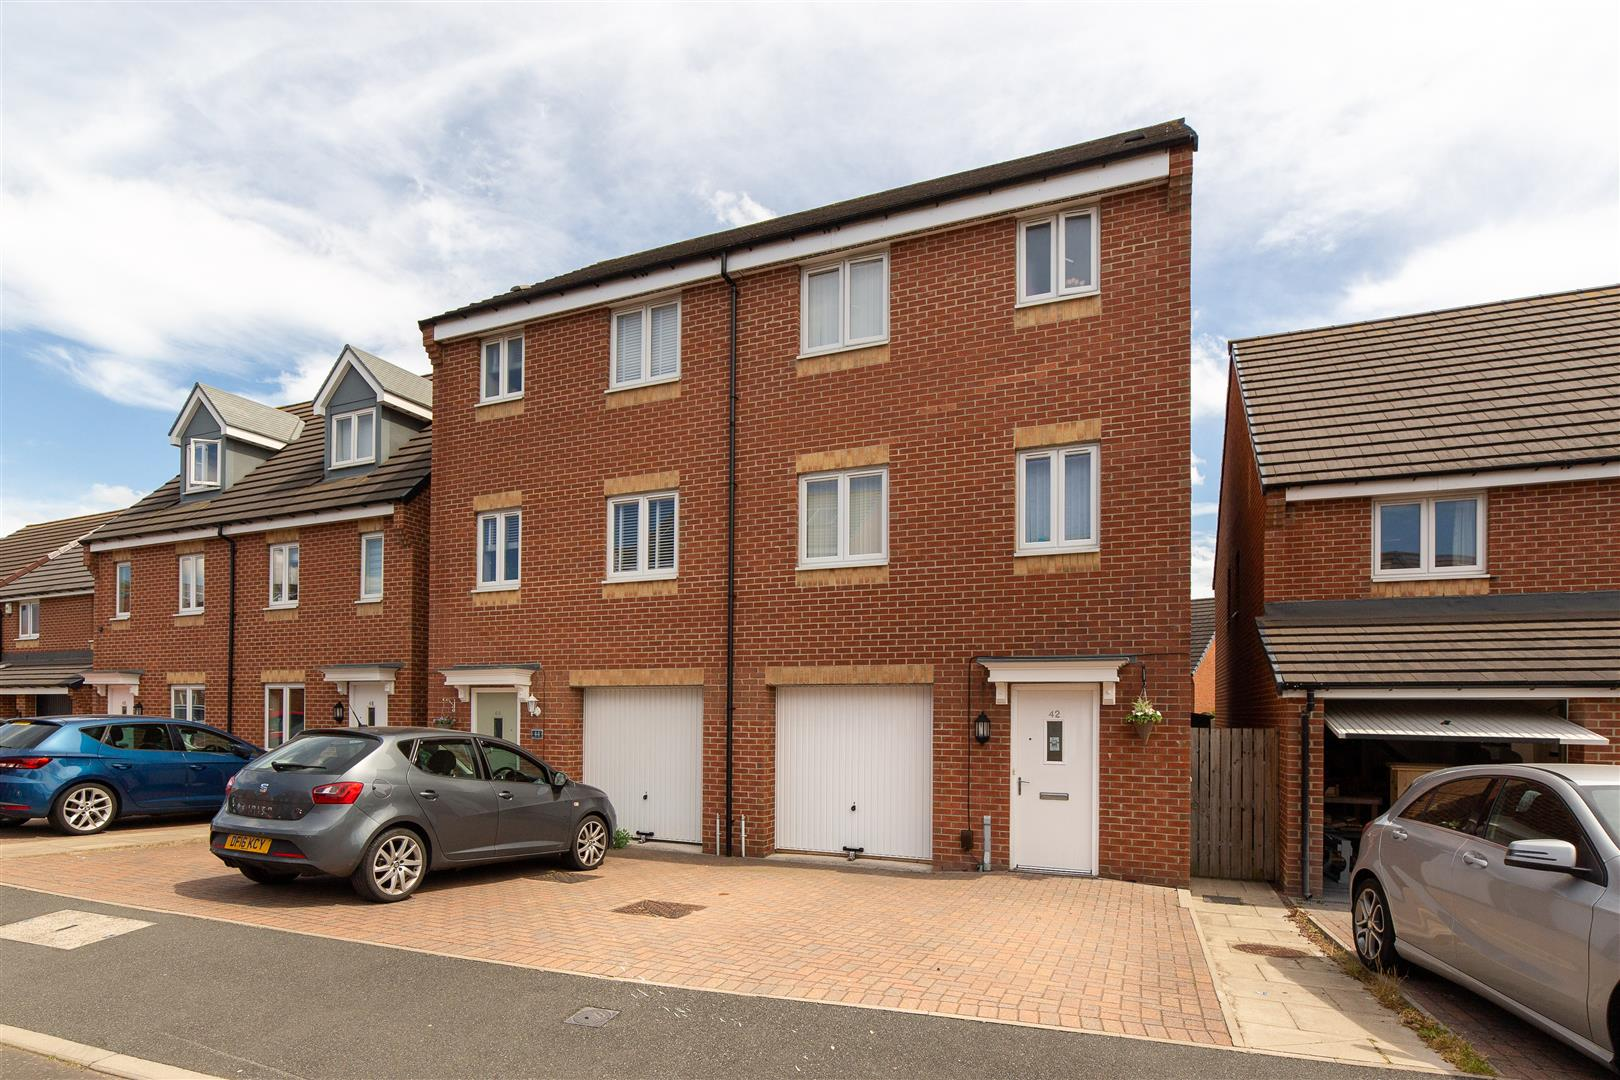 4 bed town house for sale in Brookville Crescent, Westerhope - Property Image 1